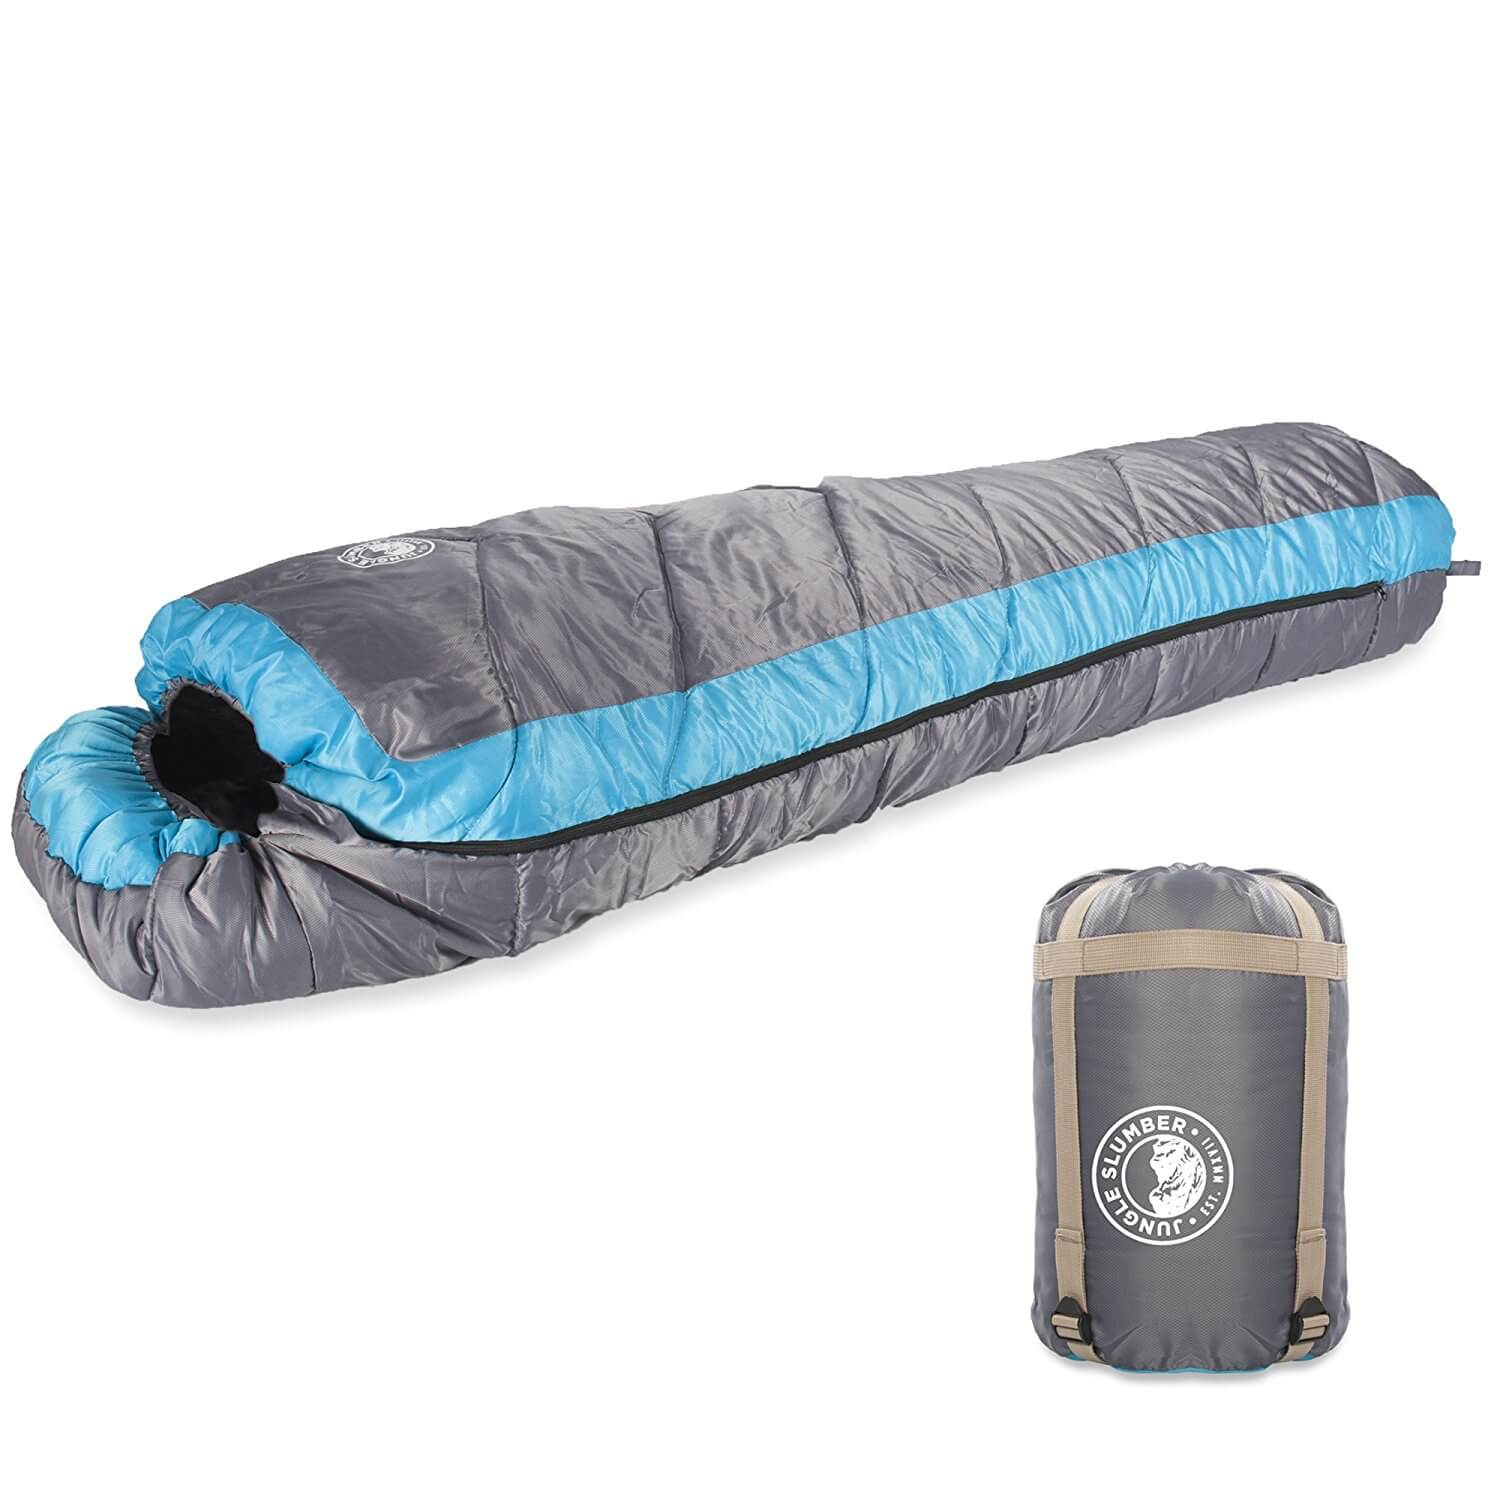 Jungle Slumber UK sleeping bags